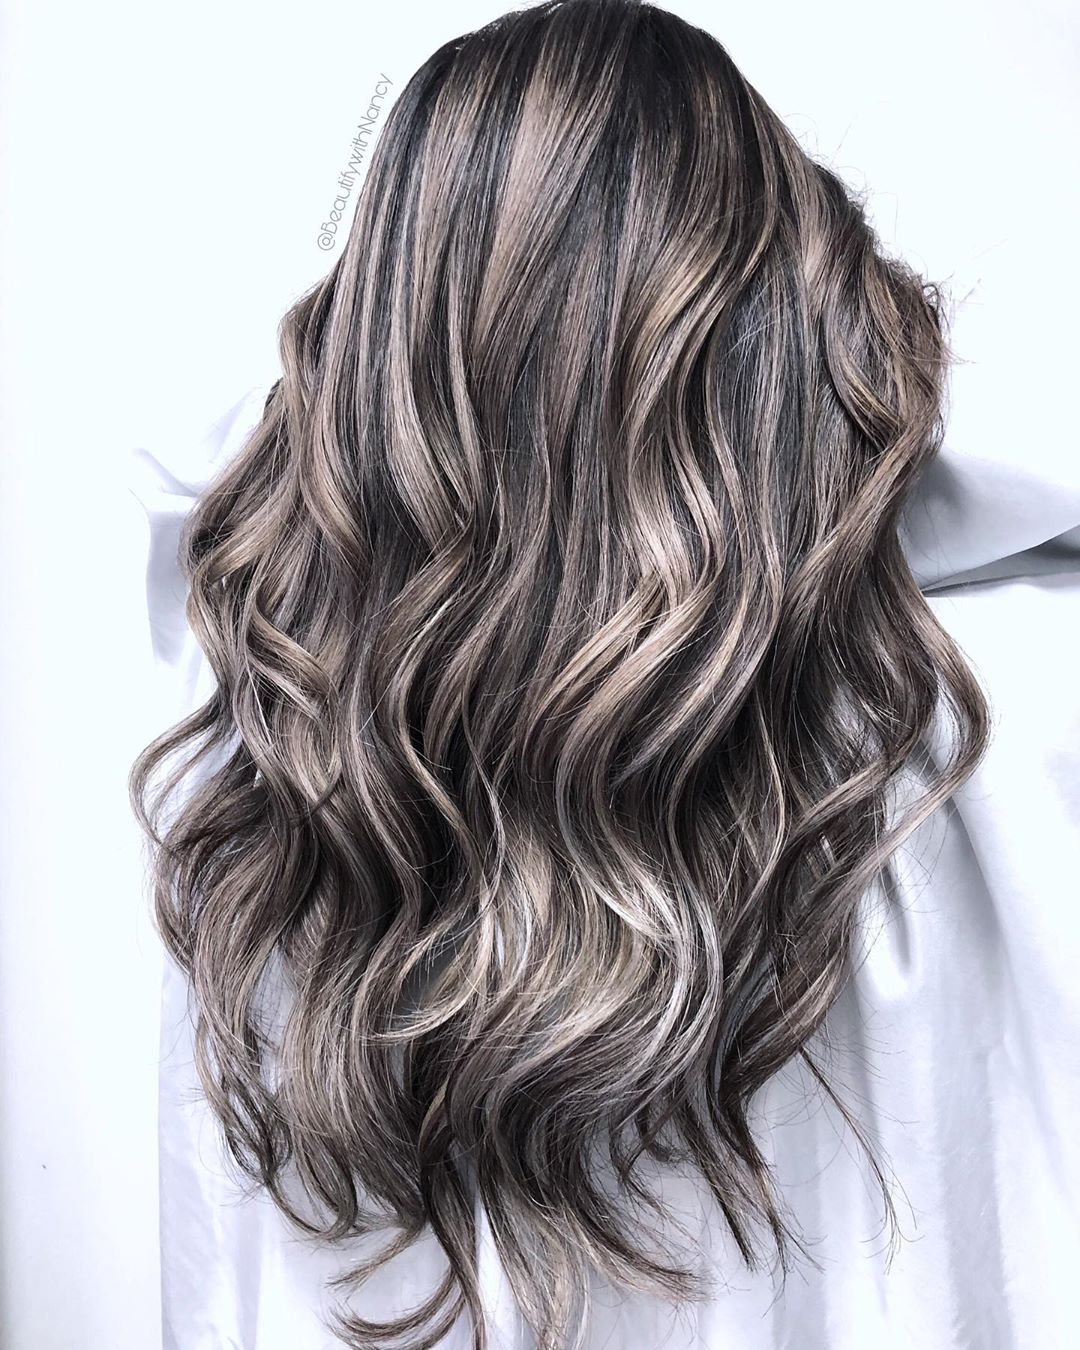 Black Hair with Silver Balayage